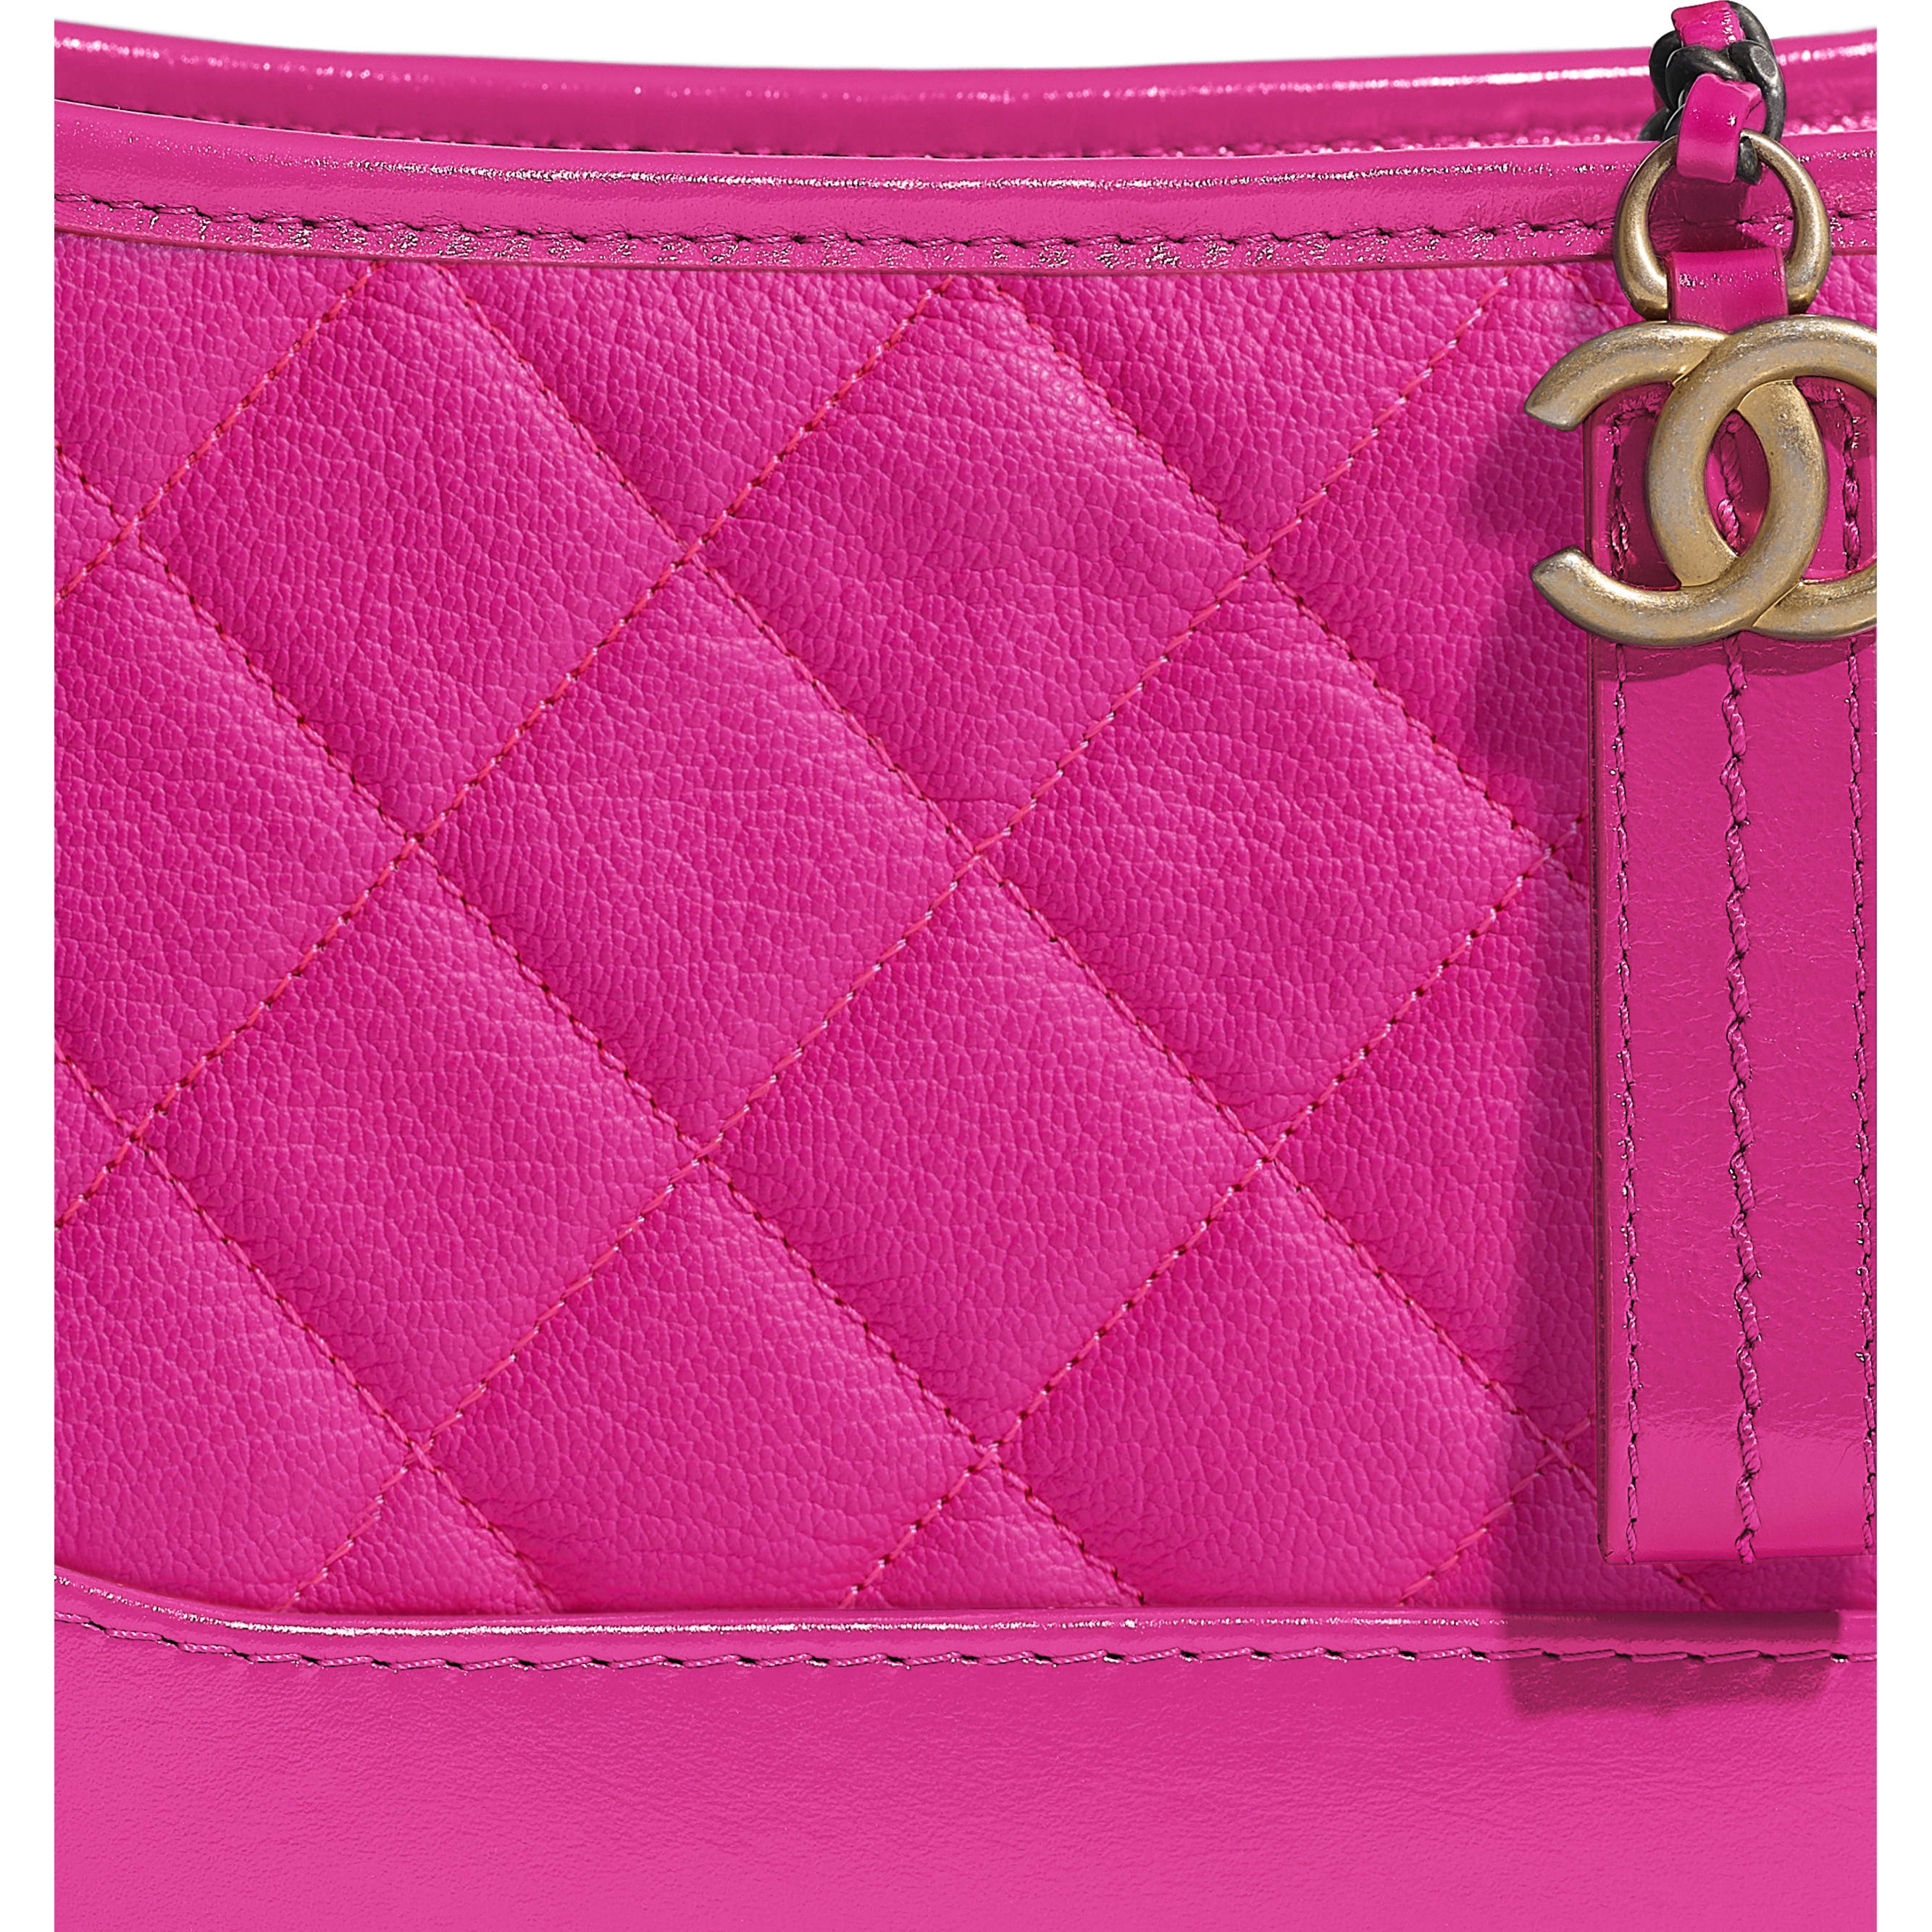 CHANEL'S GABRIELLE Small Hobo Bag - Pink - Goatskin, Gold-Tone & Silver-Tone Metal - Extra view - see standard sized version